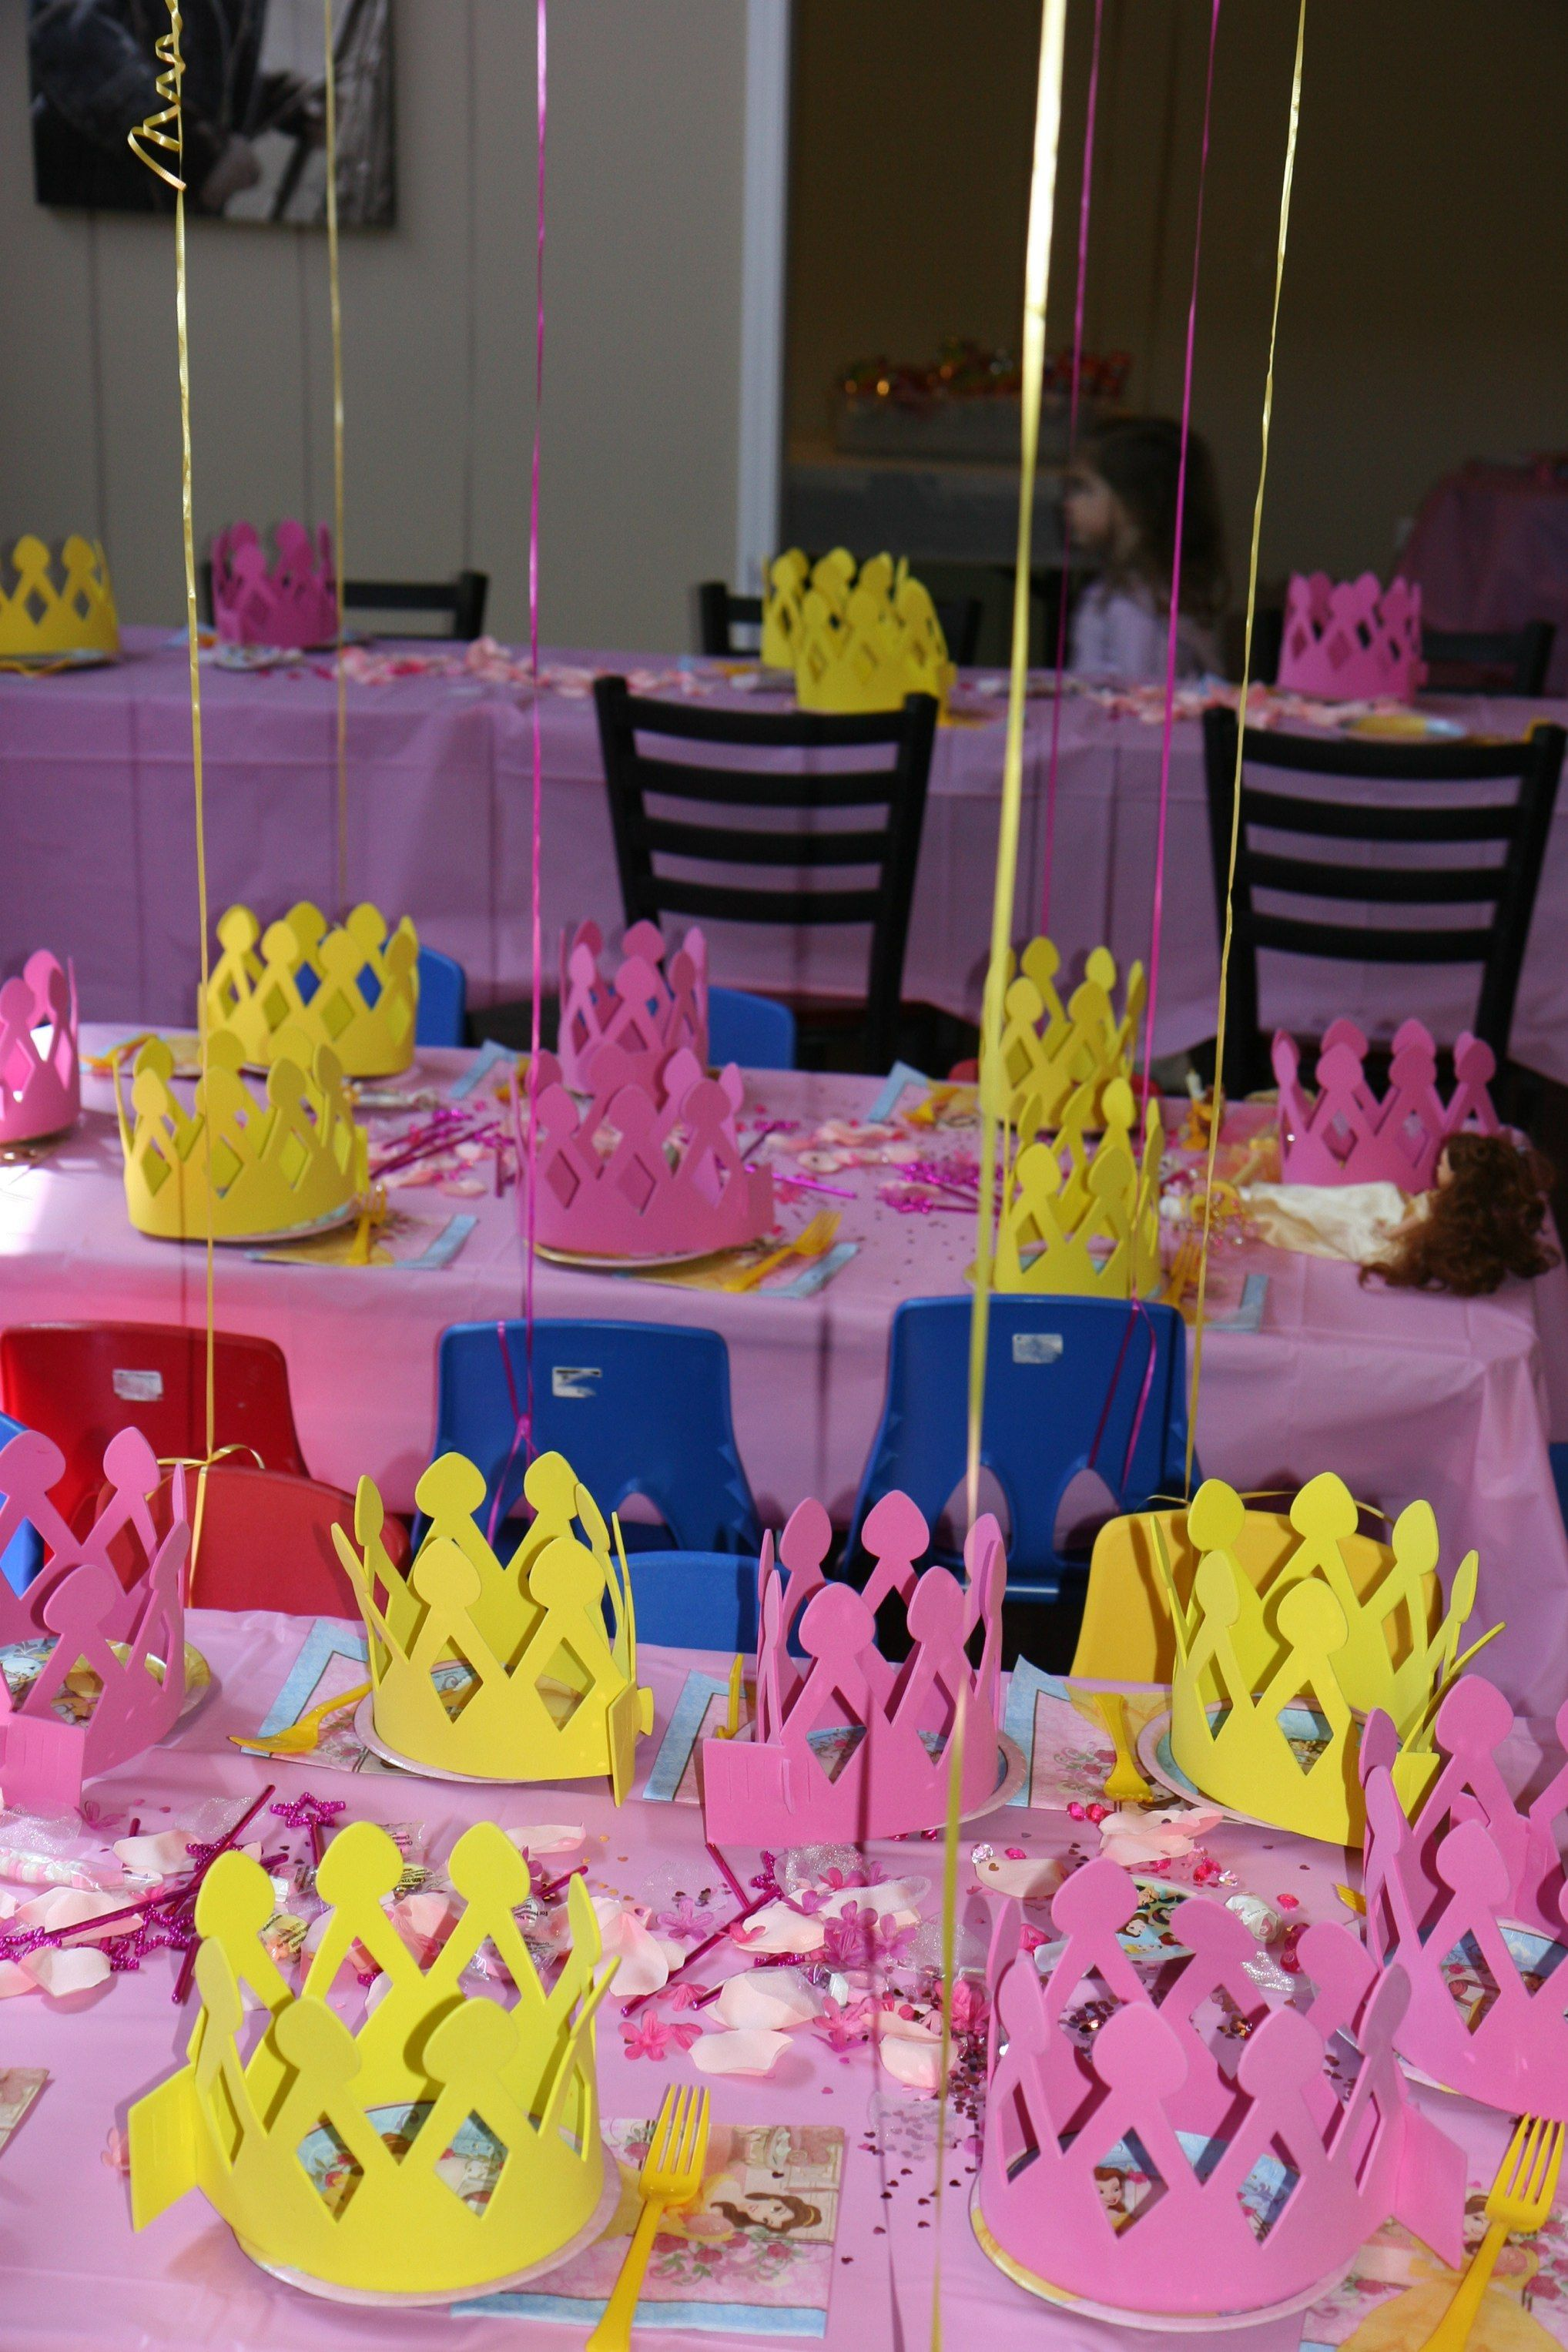 Princess party Childrens Party Ideas featuring ljbminis2021 GUEST